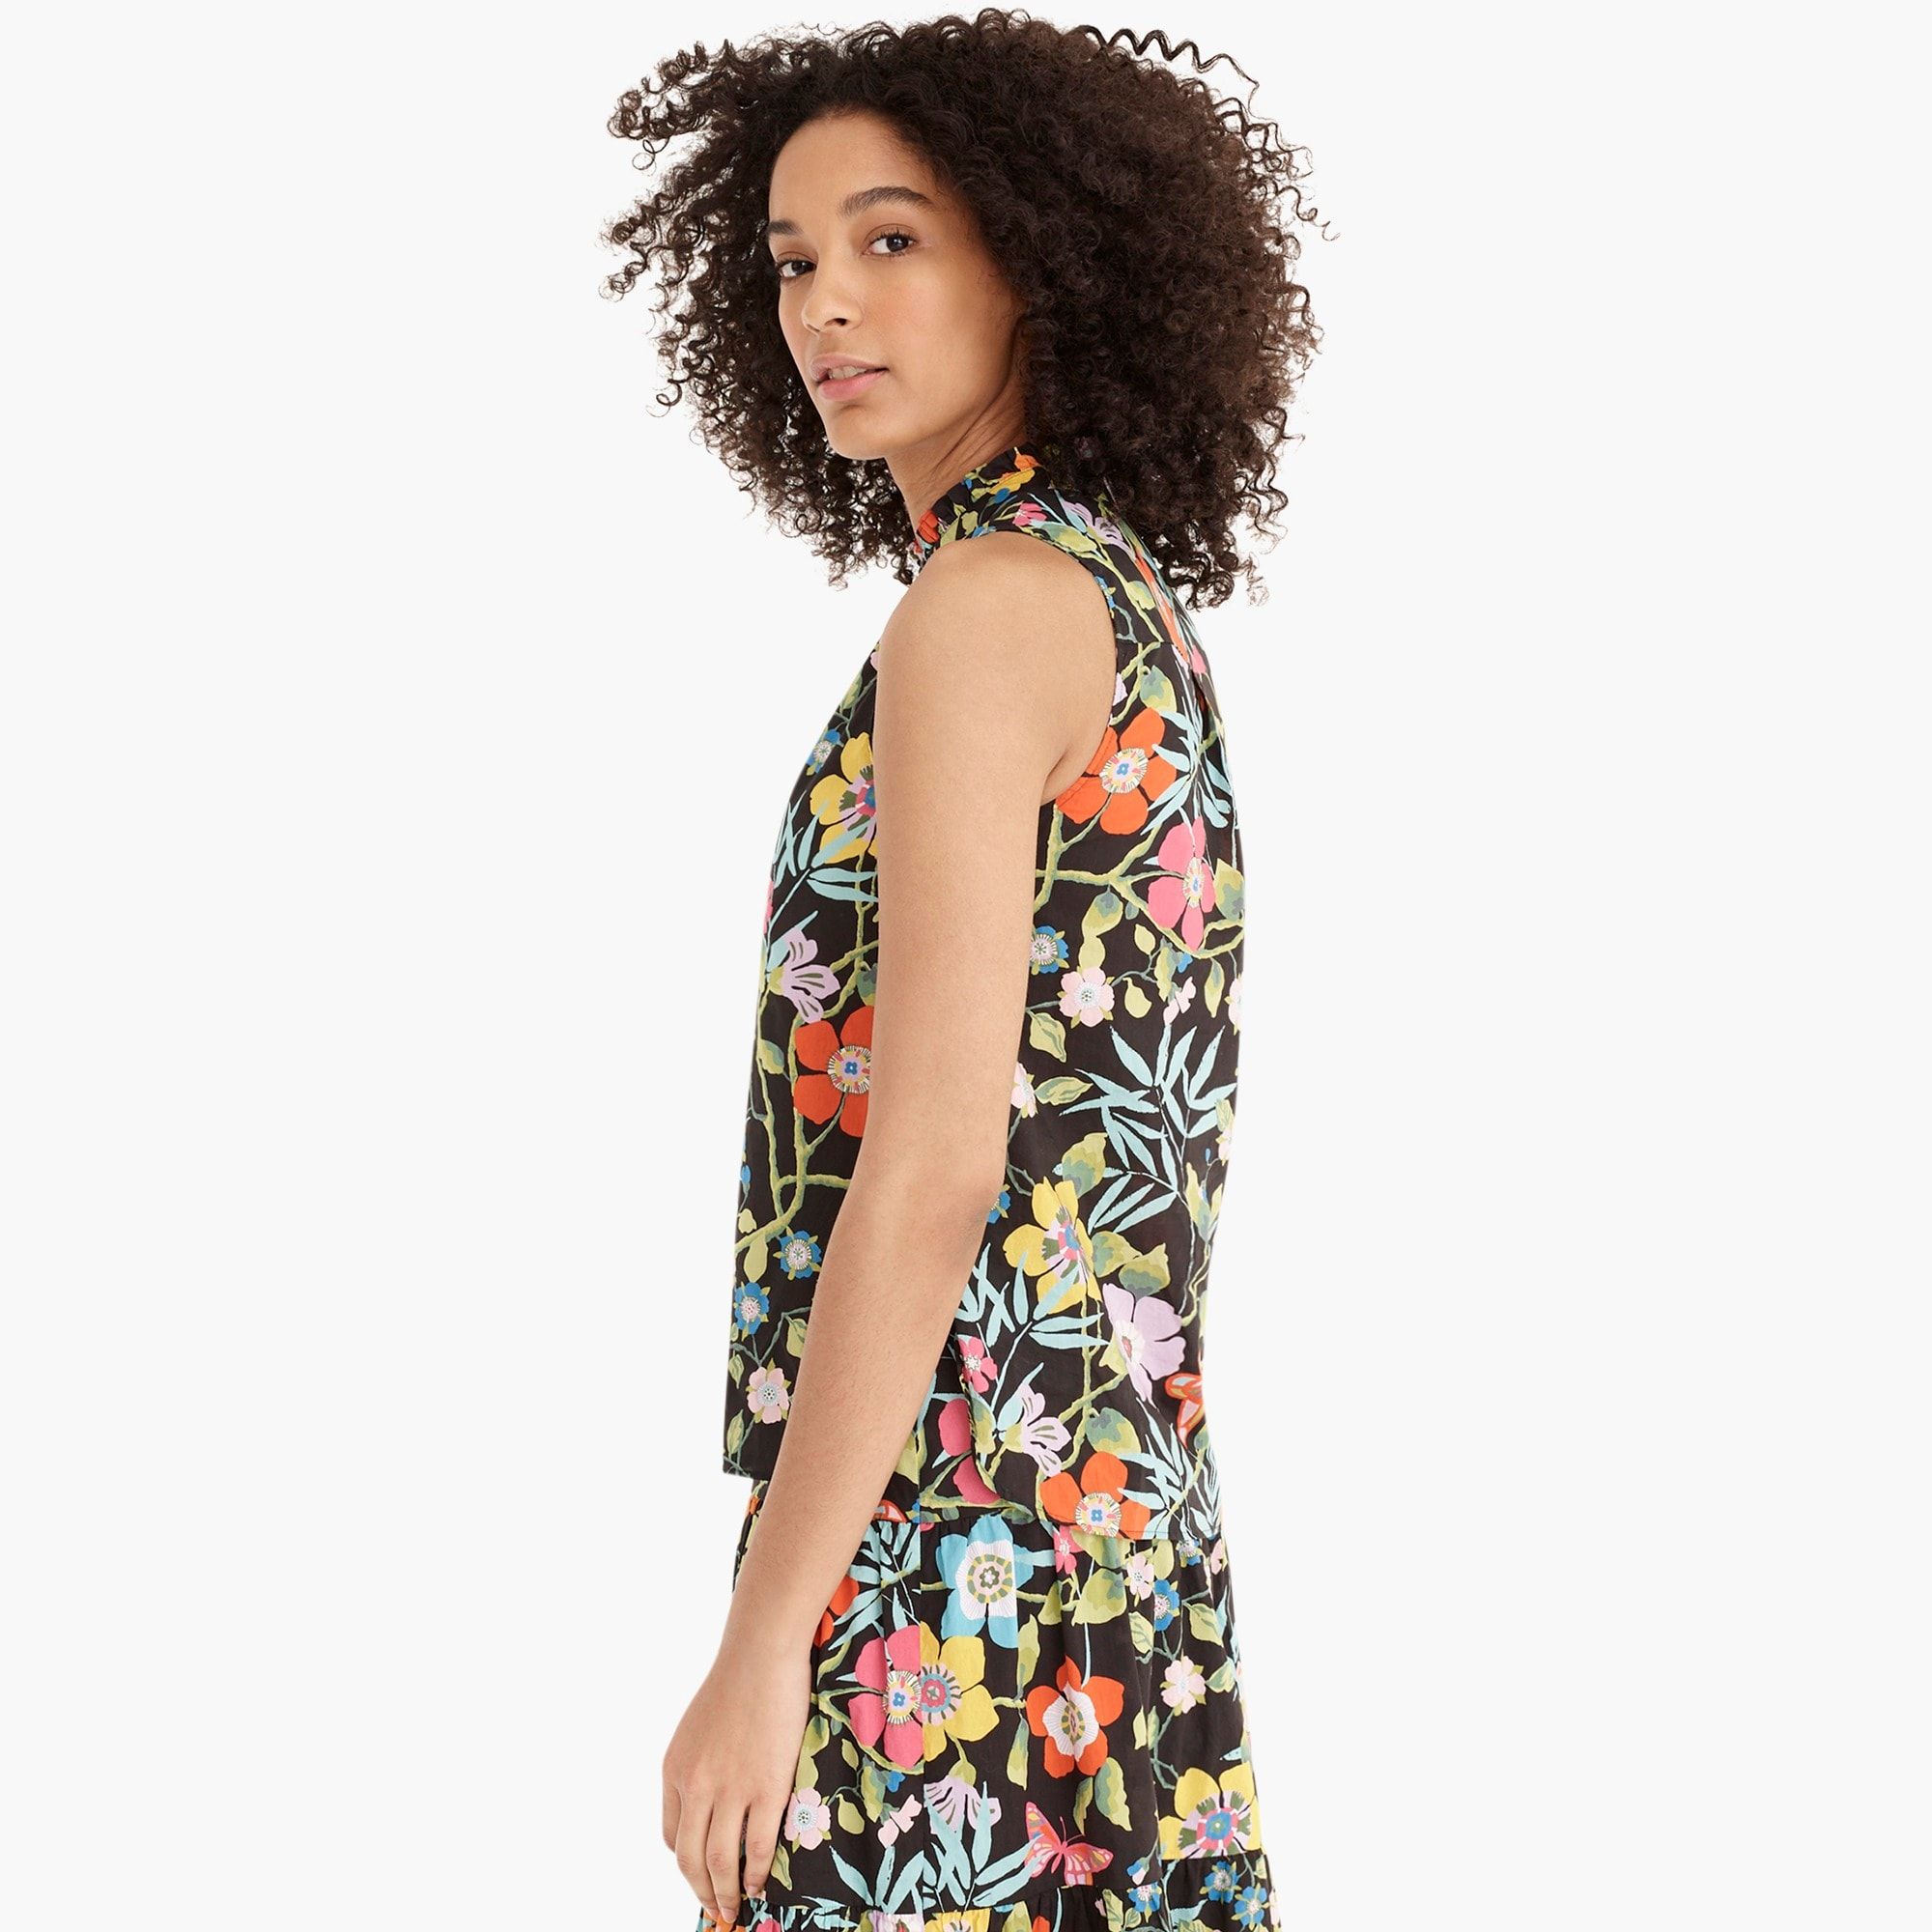 Ruffle-neck top in Liberty® Pavilion black floral